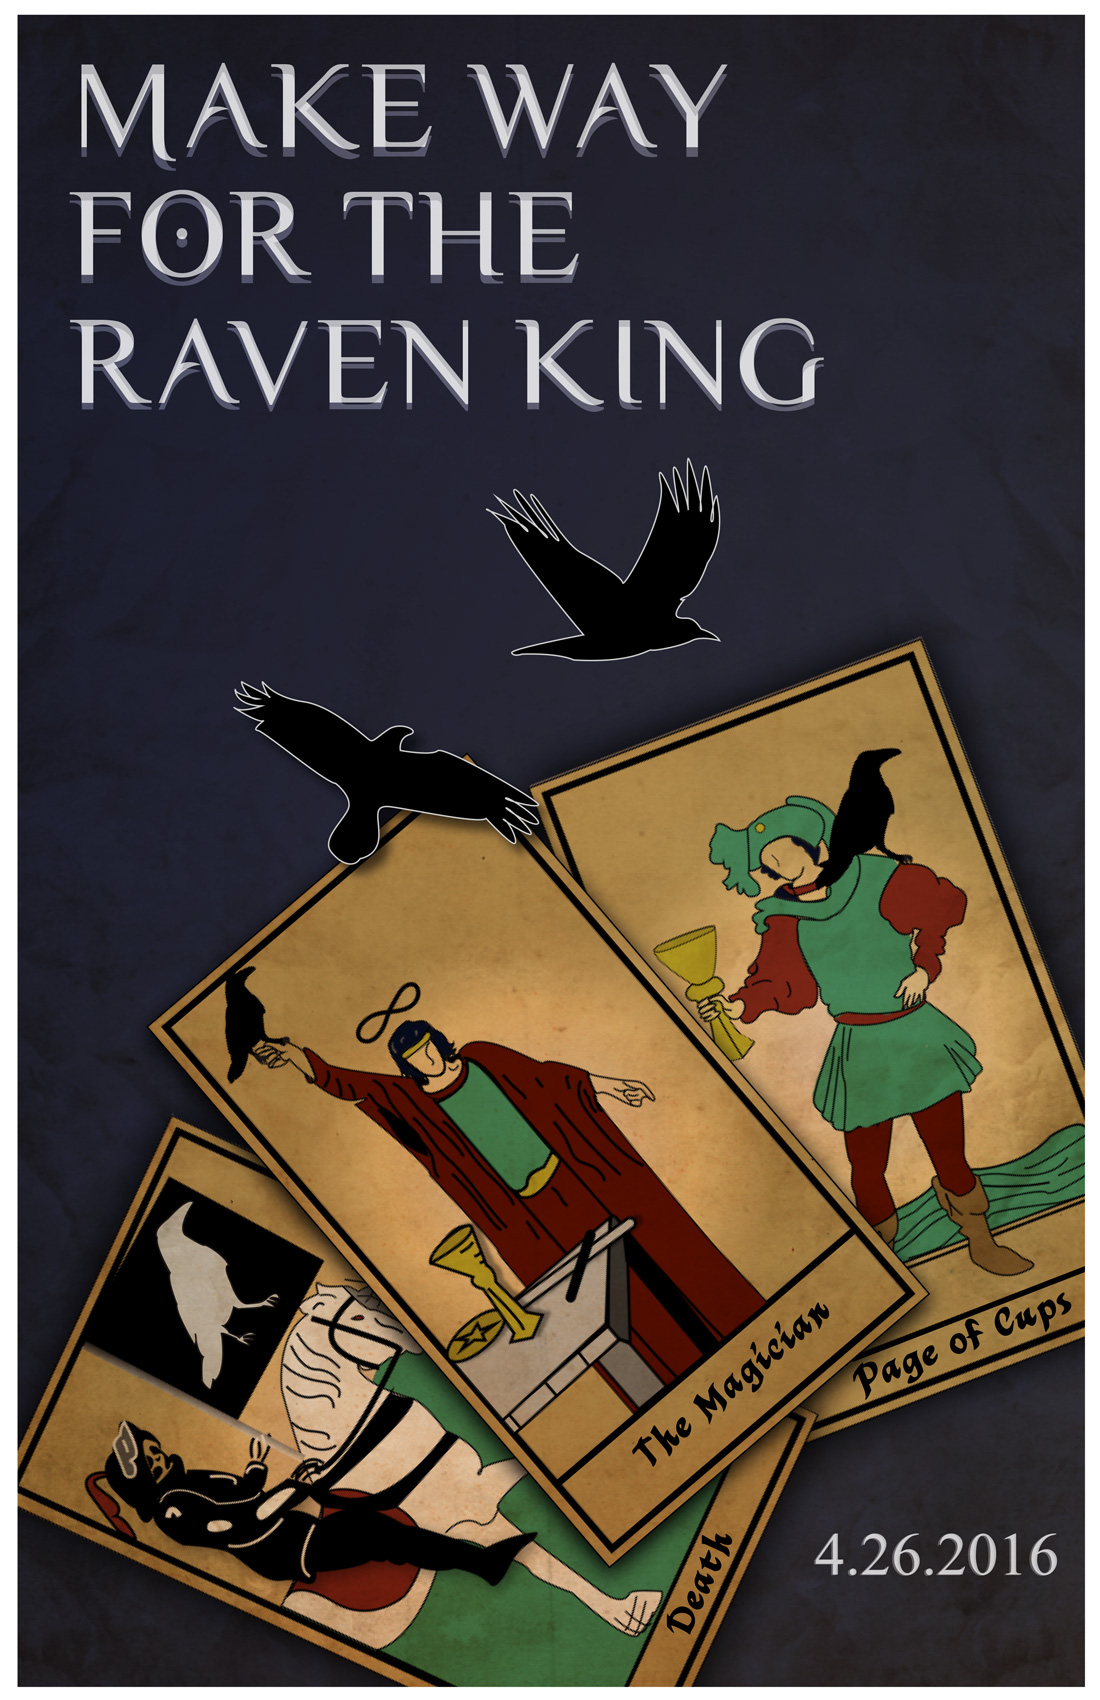 the-raven-king-poster